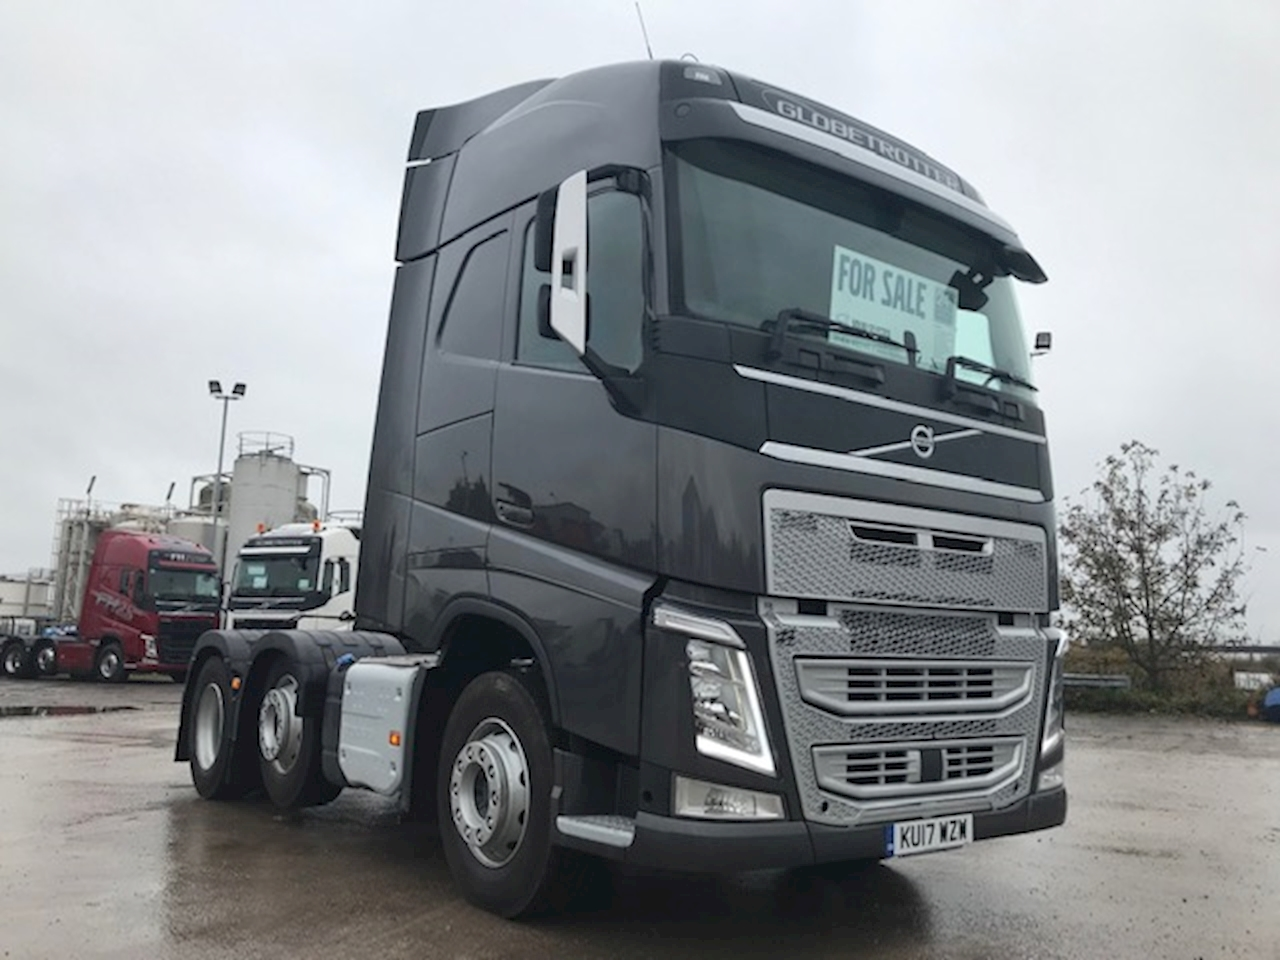 Volvo FH4 FH13 460 6x2 Globetrotter 12.8 2dr Tractor (Heavy Haulage) I-Shift Diesel